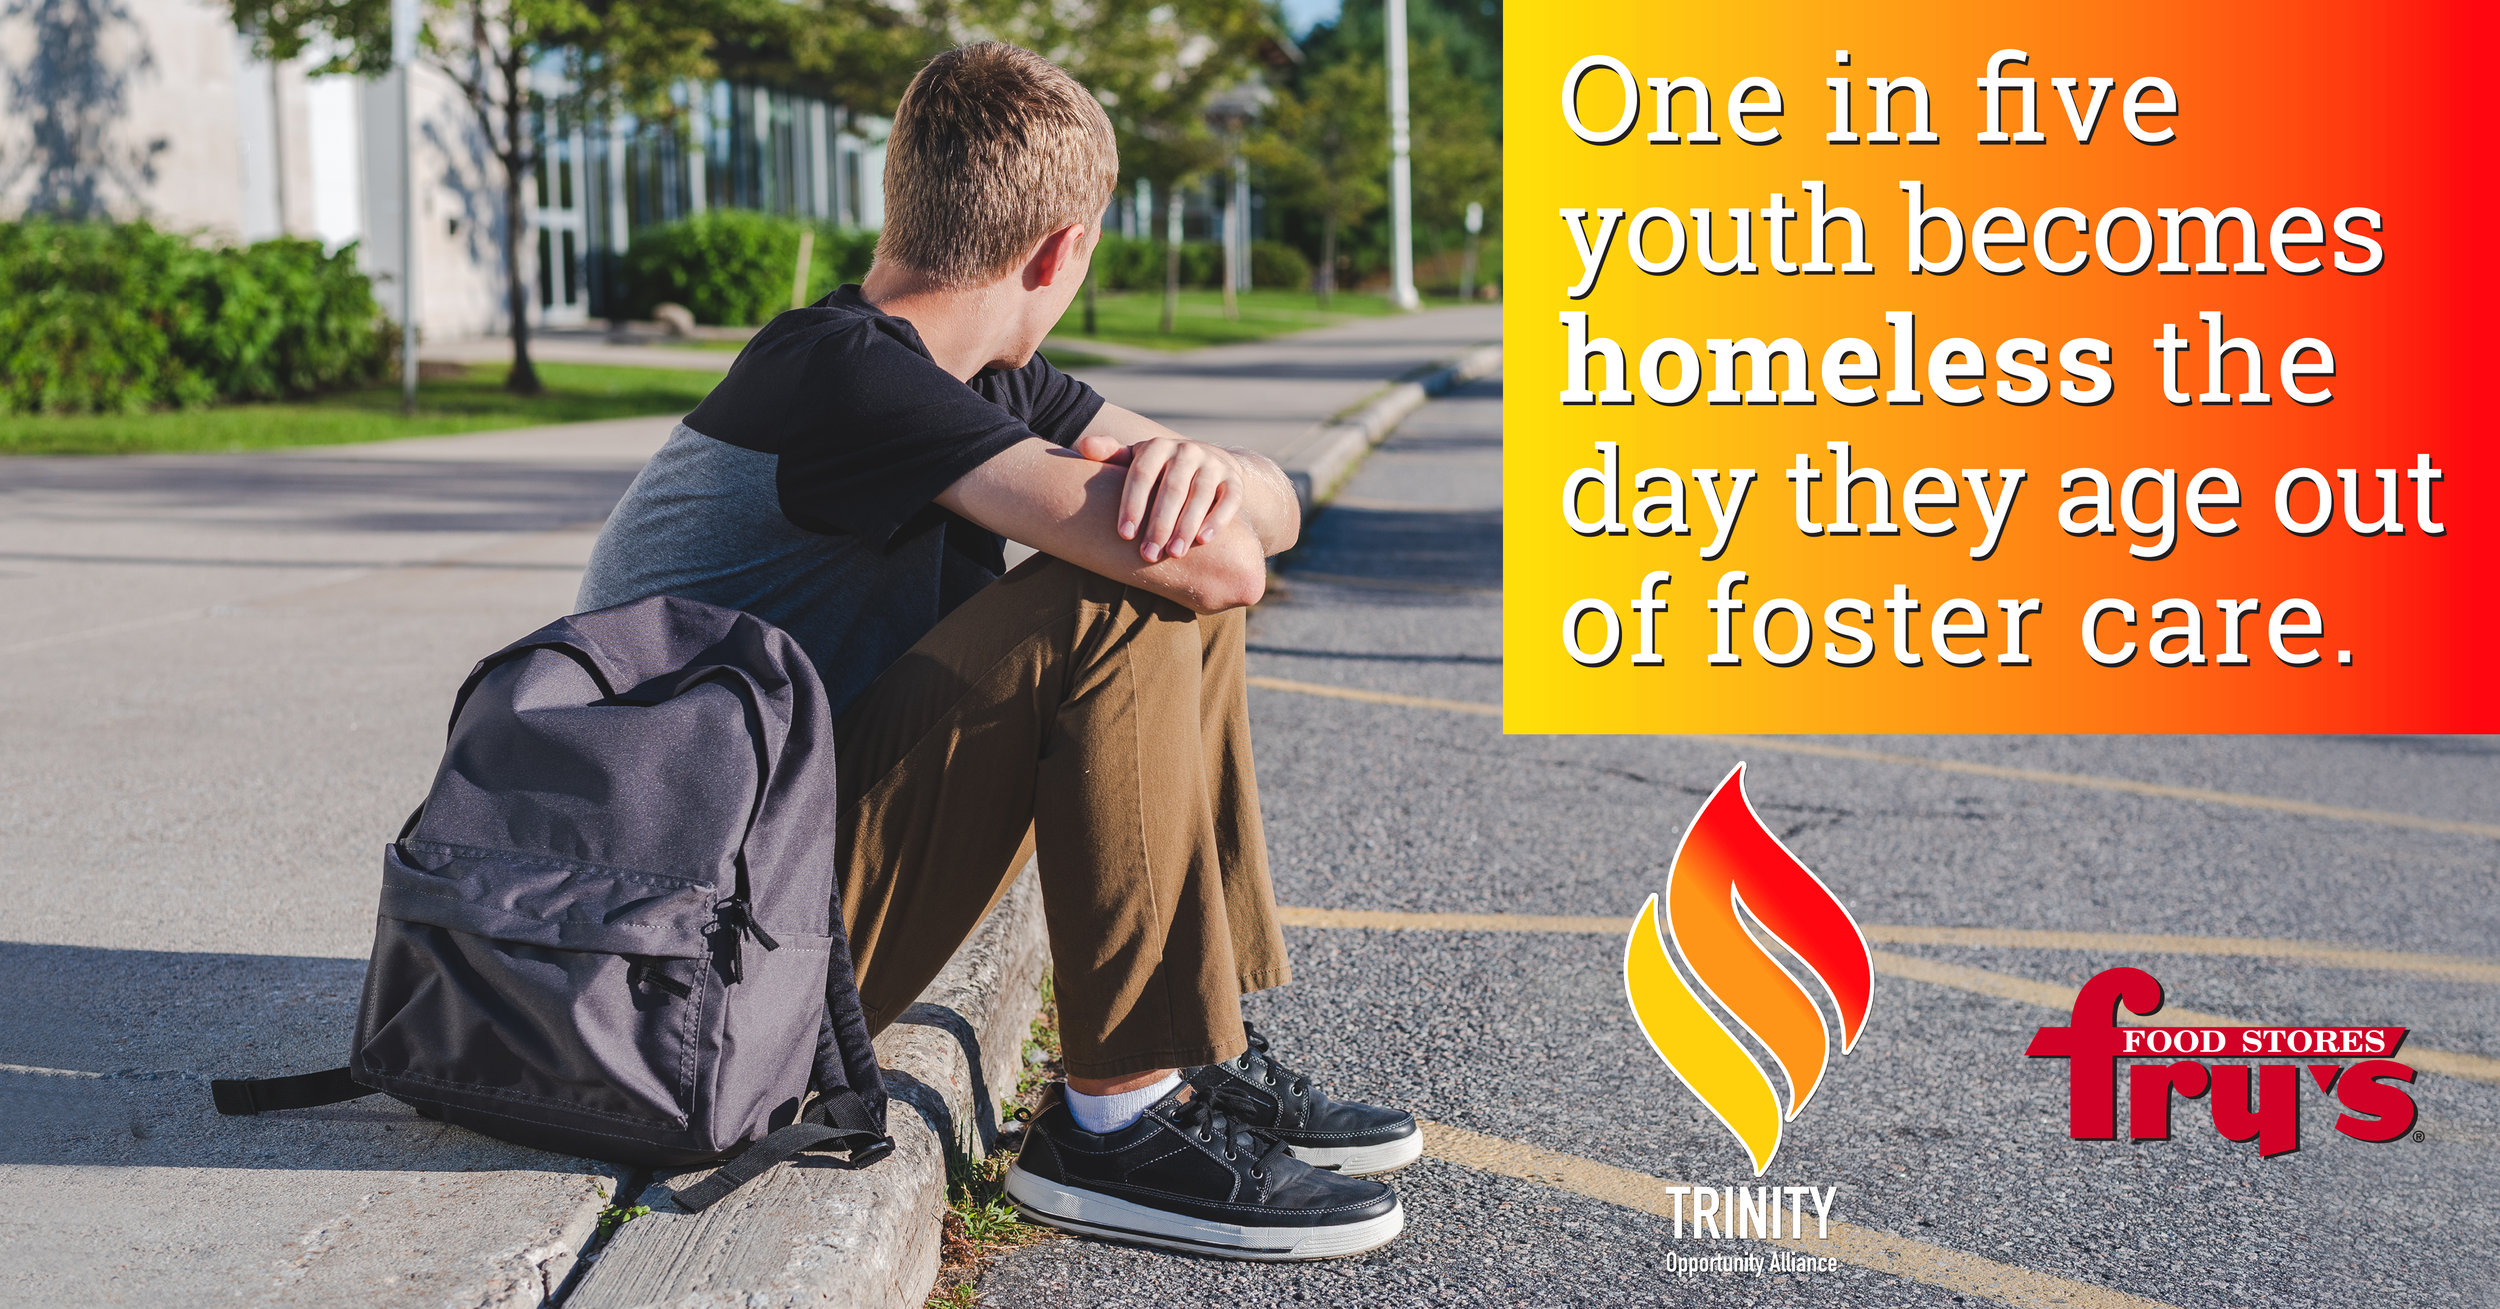 Turning 18 is a milestone, but for young adults leaving foster care it means uncertainty. -